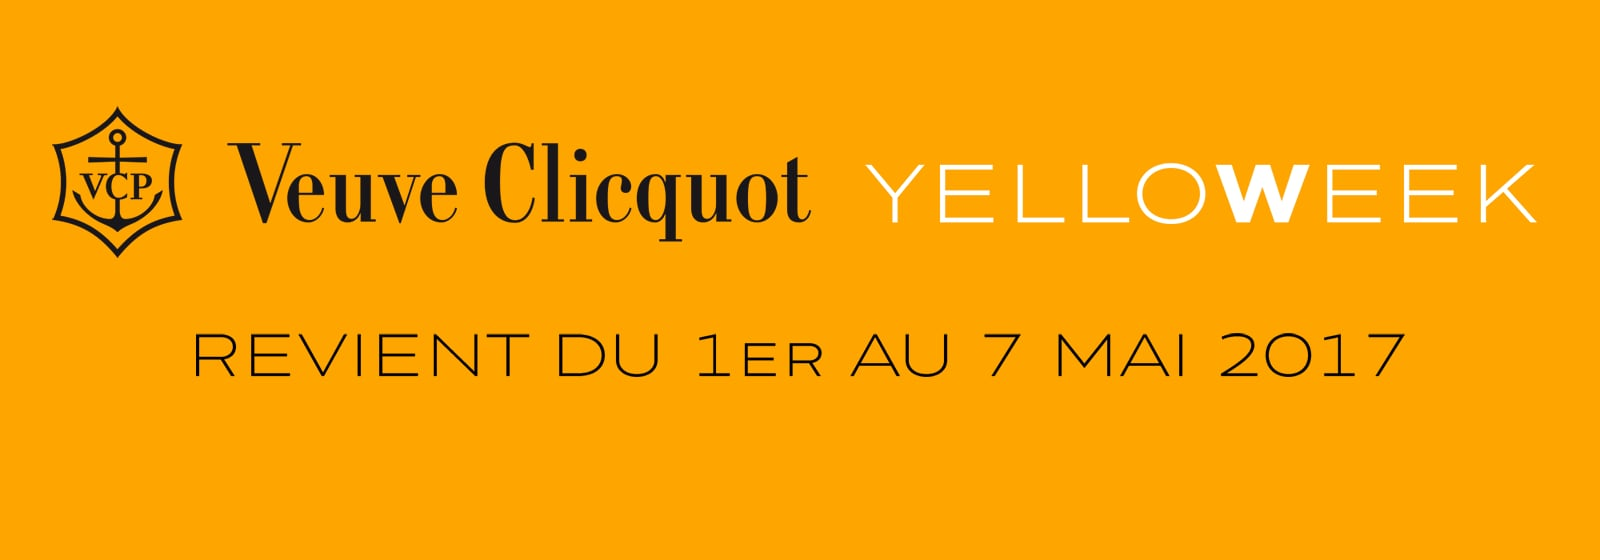 VeuveClicquot YelloWeek